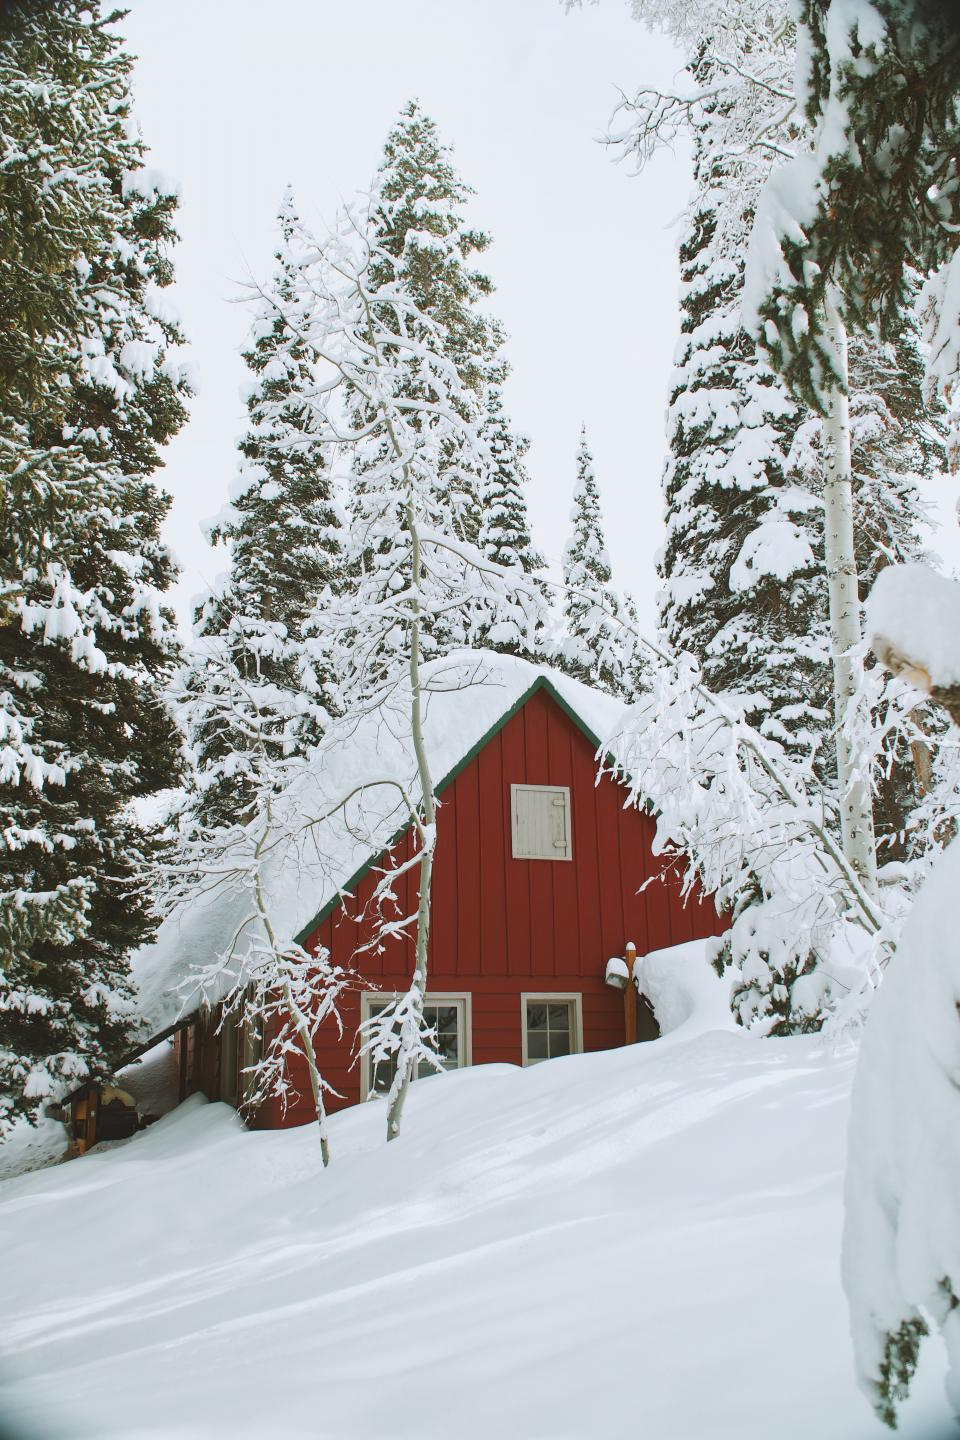 snow winter white cold weather ice trees plants nature barn cabin house home